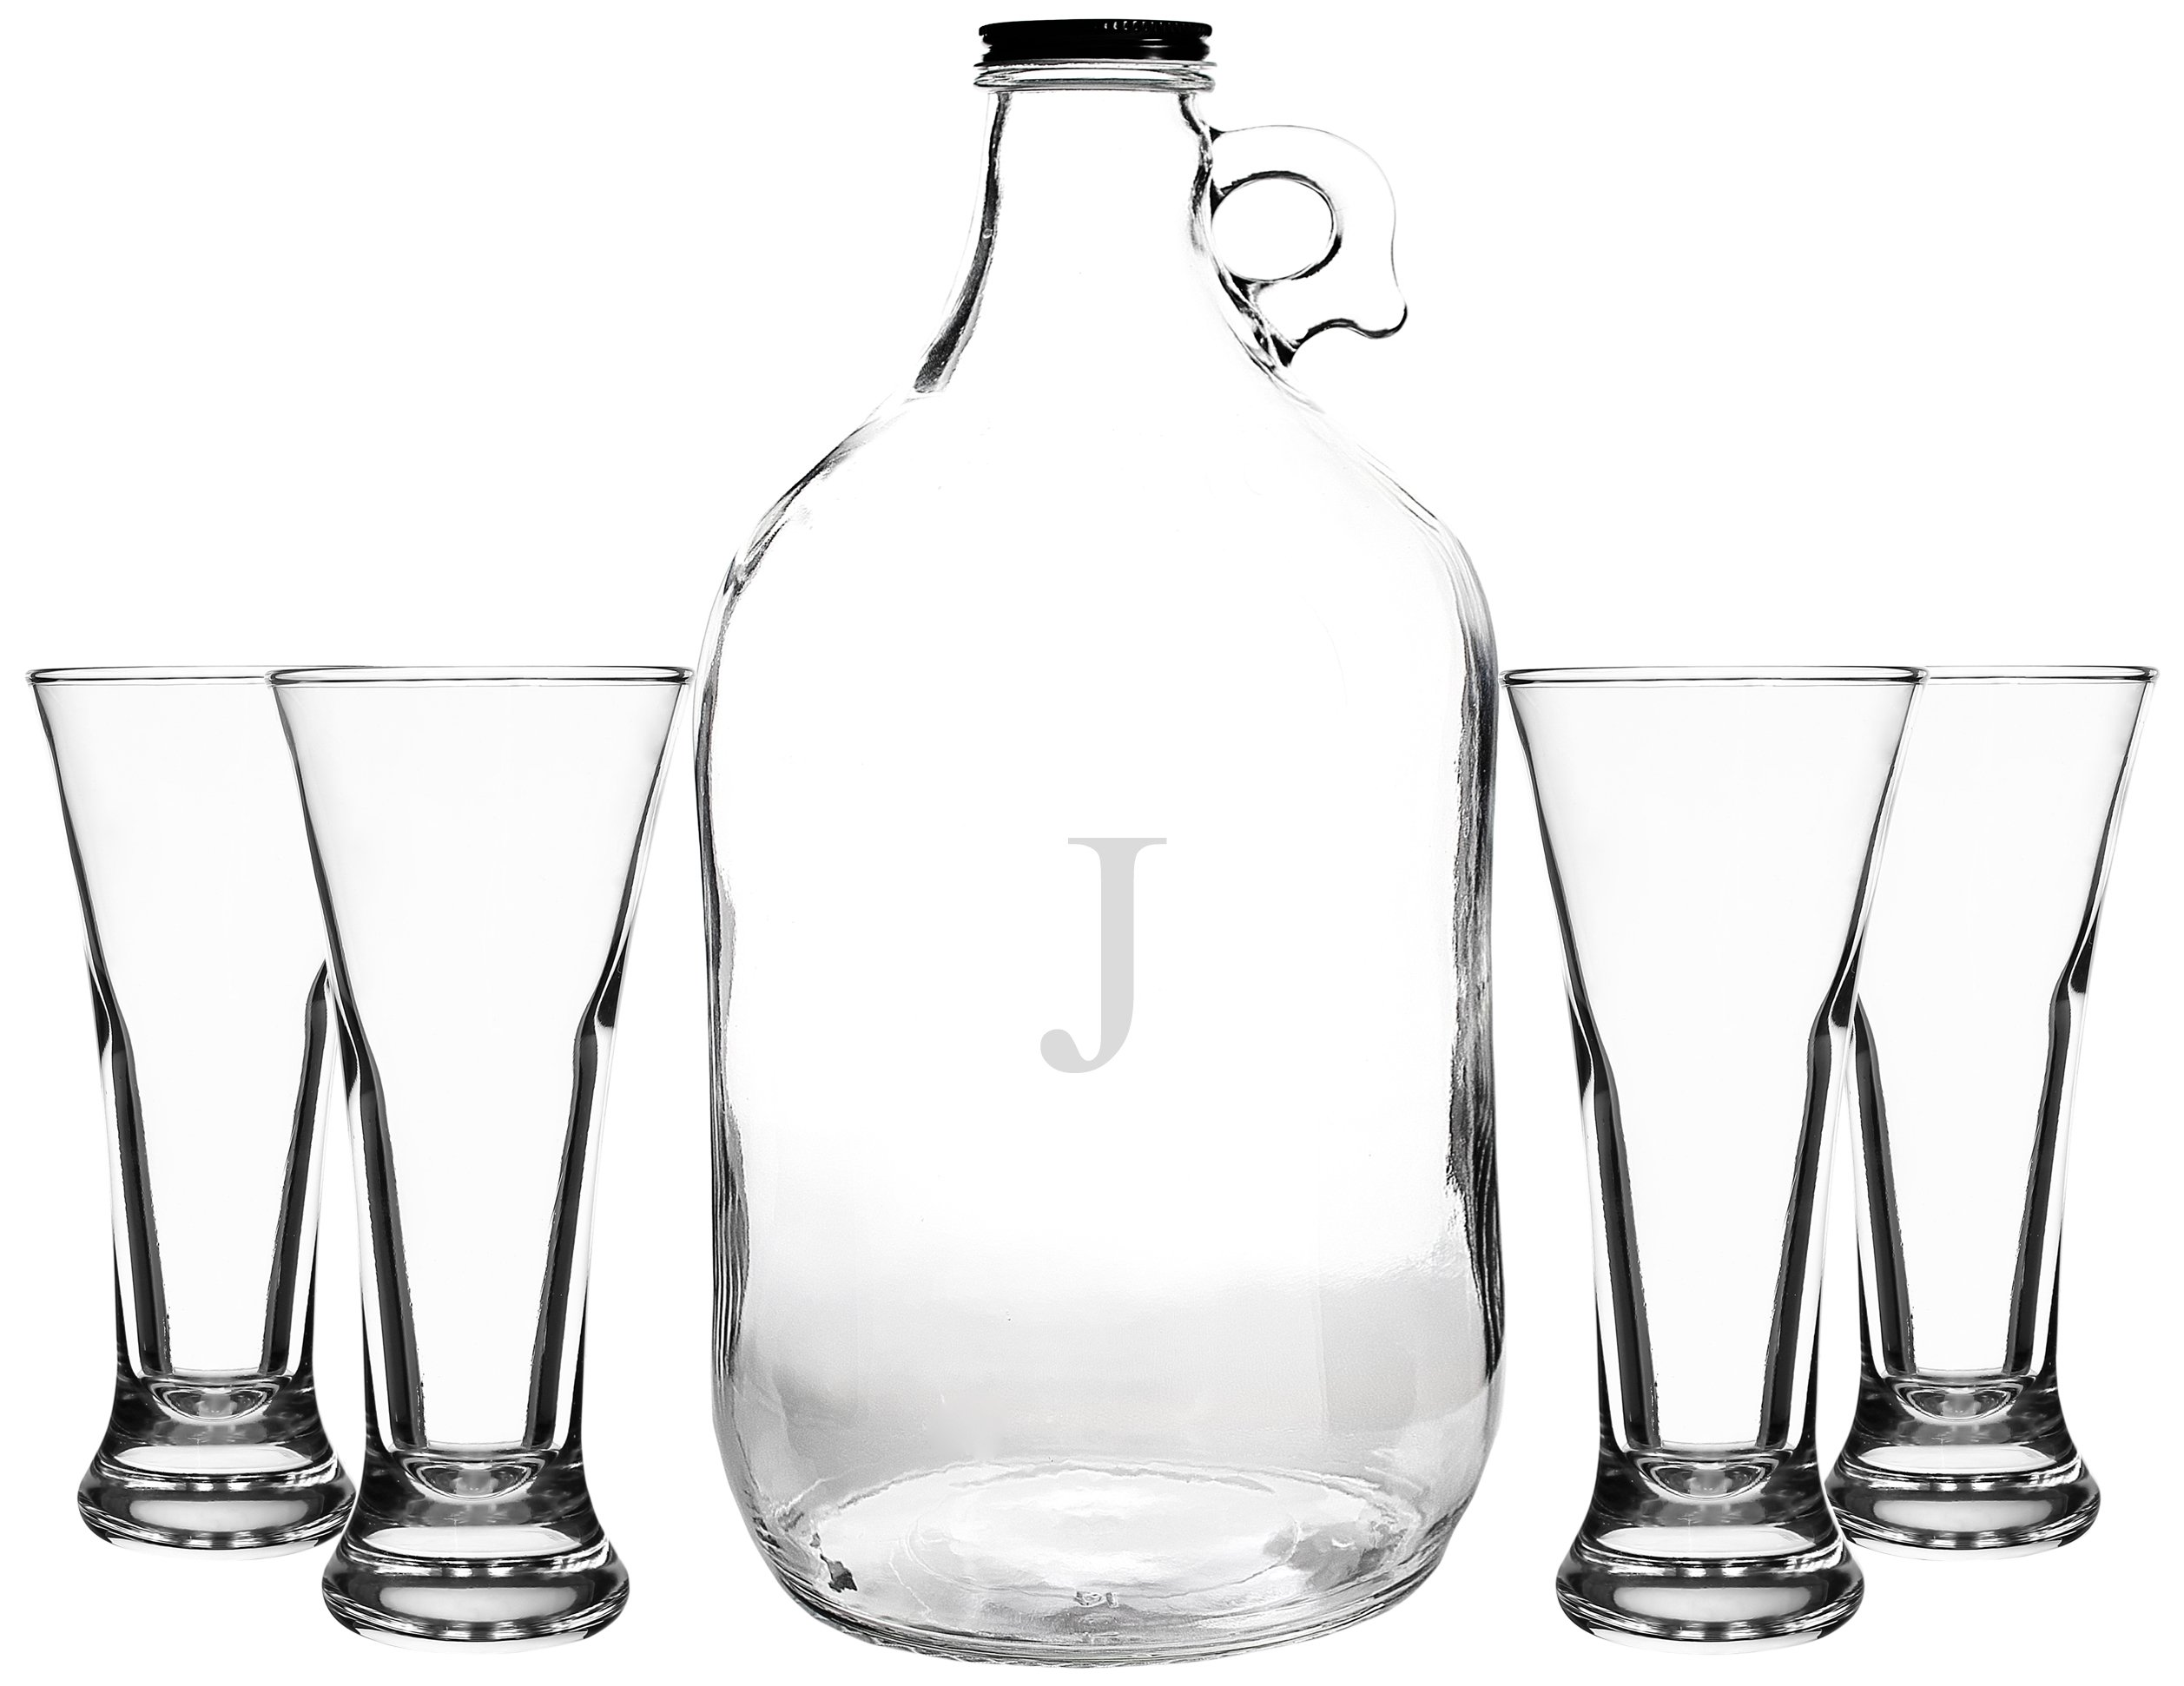 Cathy's Concepts Personalized Craft Beer Growler & Tasters Set, Letter J